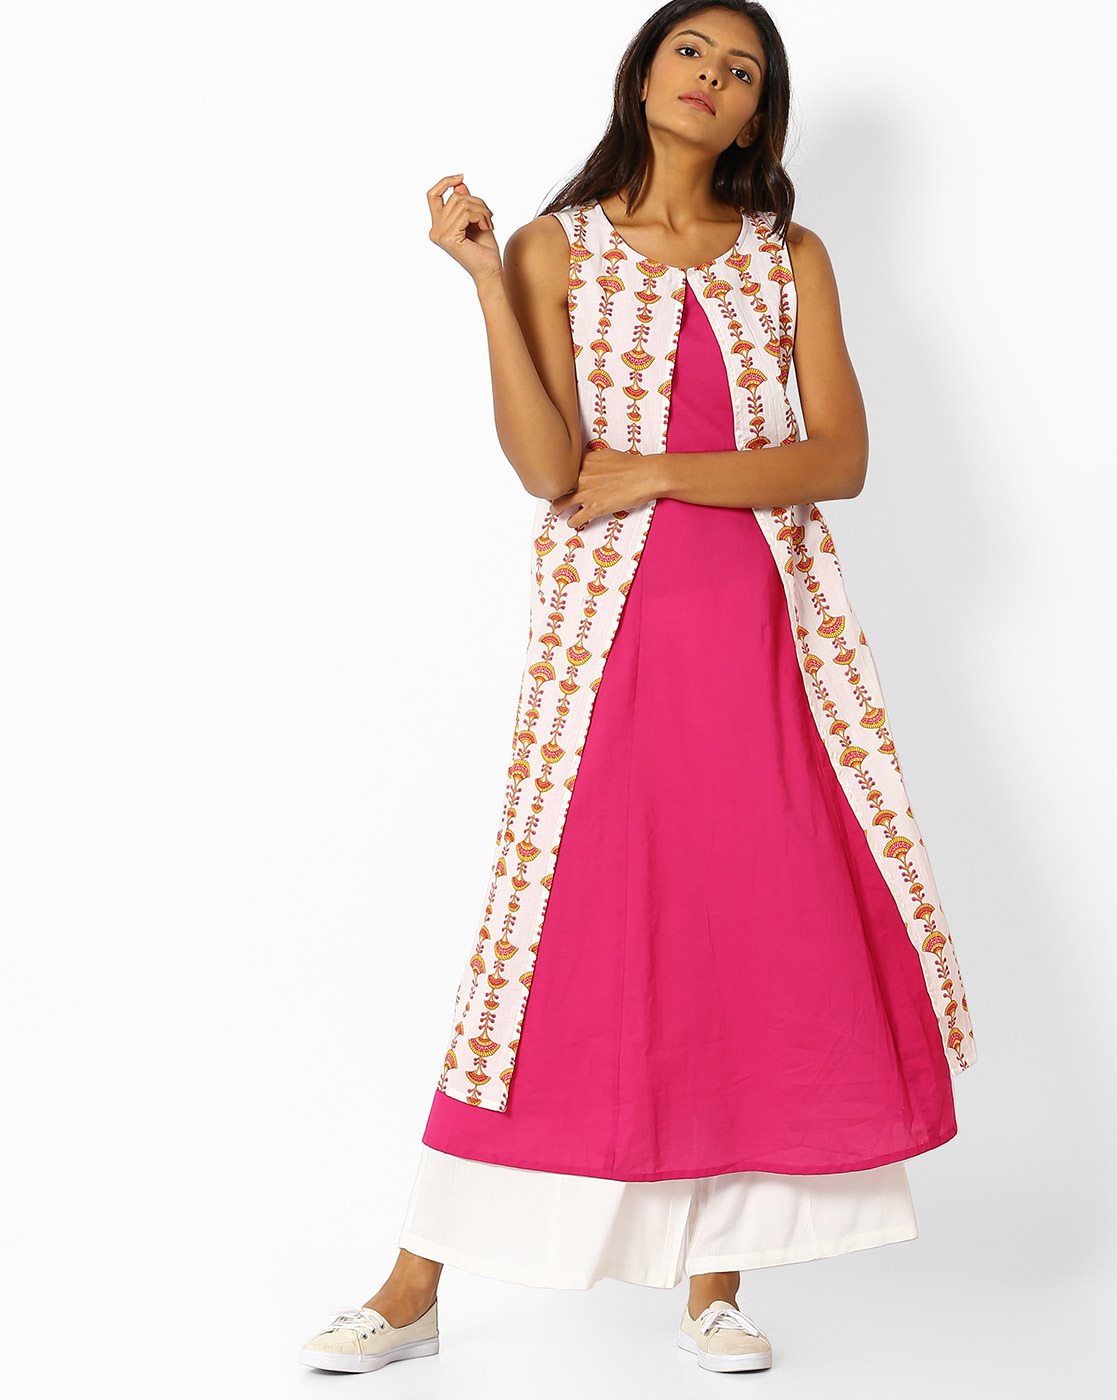 Designer Kurti Patterns